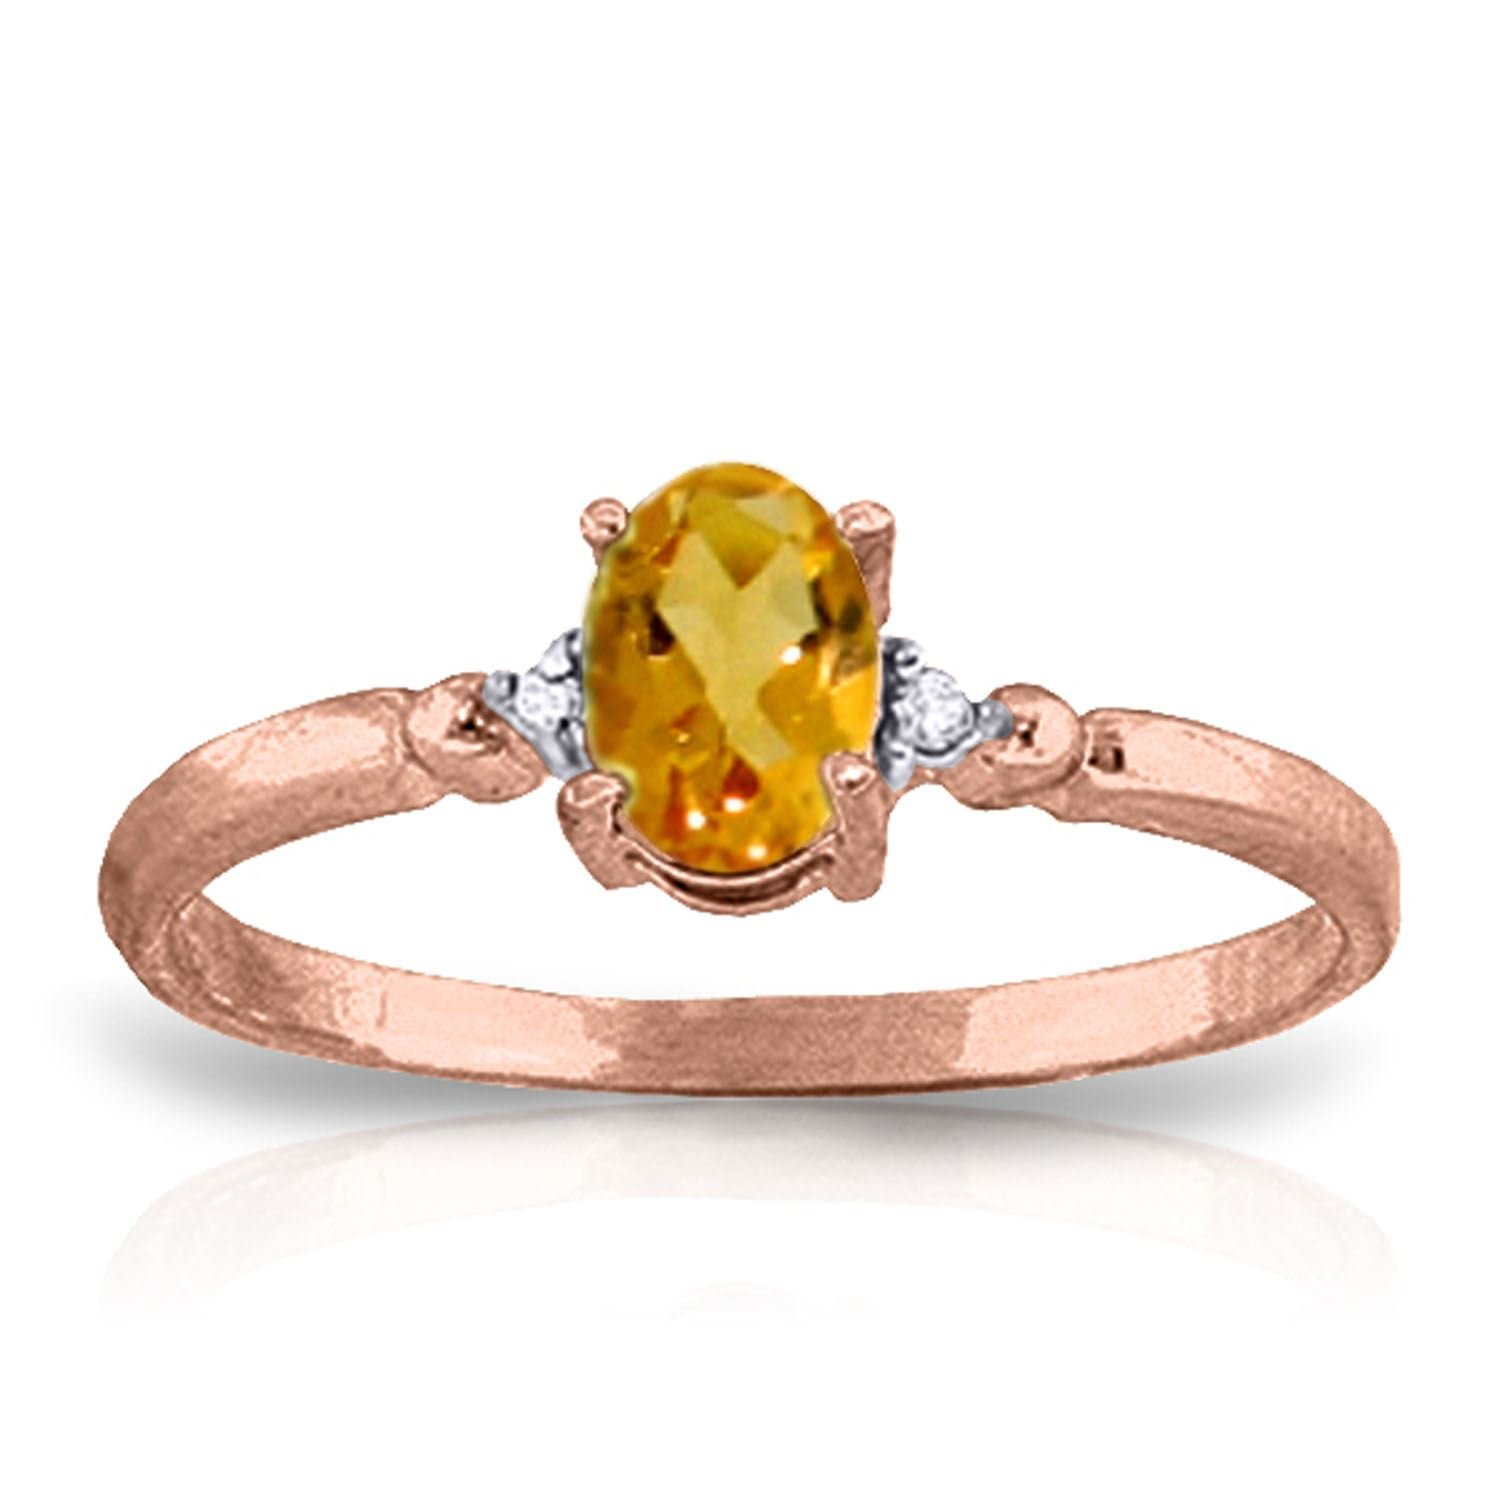 ALARRI 0.46 CTW 14K Solid Rose Gold Young Love Citrine Diamond Ring With Ring Size 8